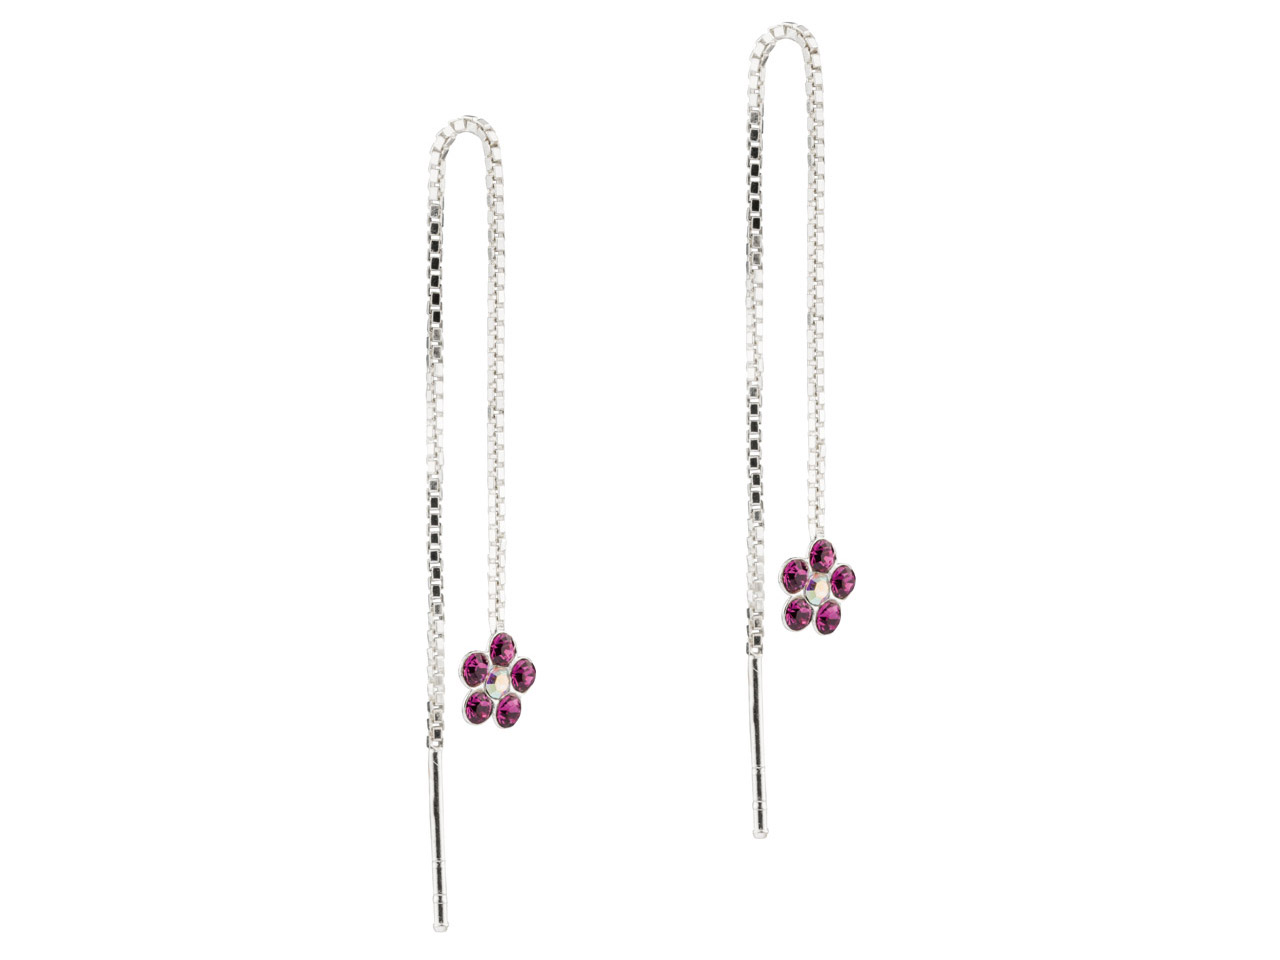 Sterling Silver Threadable Earrings With Crystal Set Flower